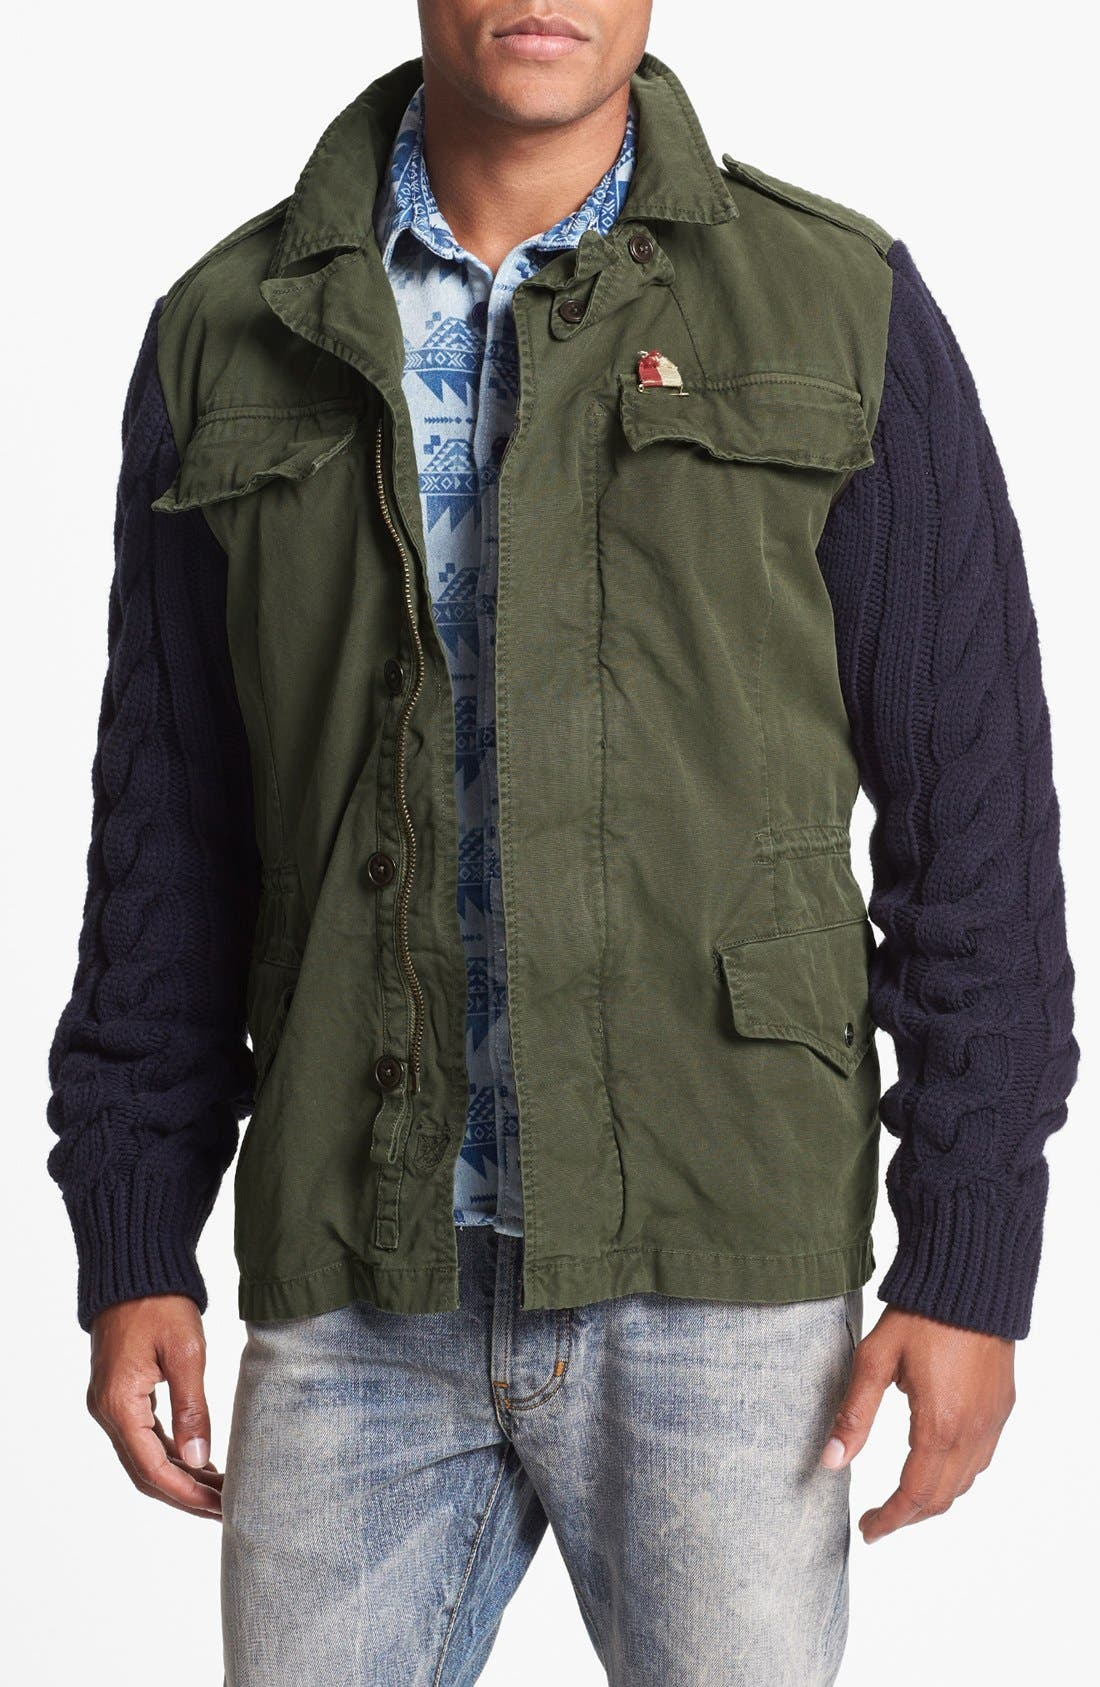 Alternate Image 1 Selected - Scotch & Soda Military Jacket with Knit Sleeves